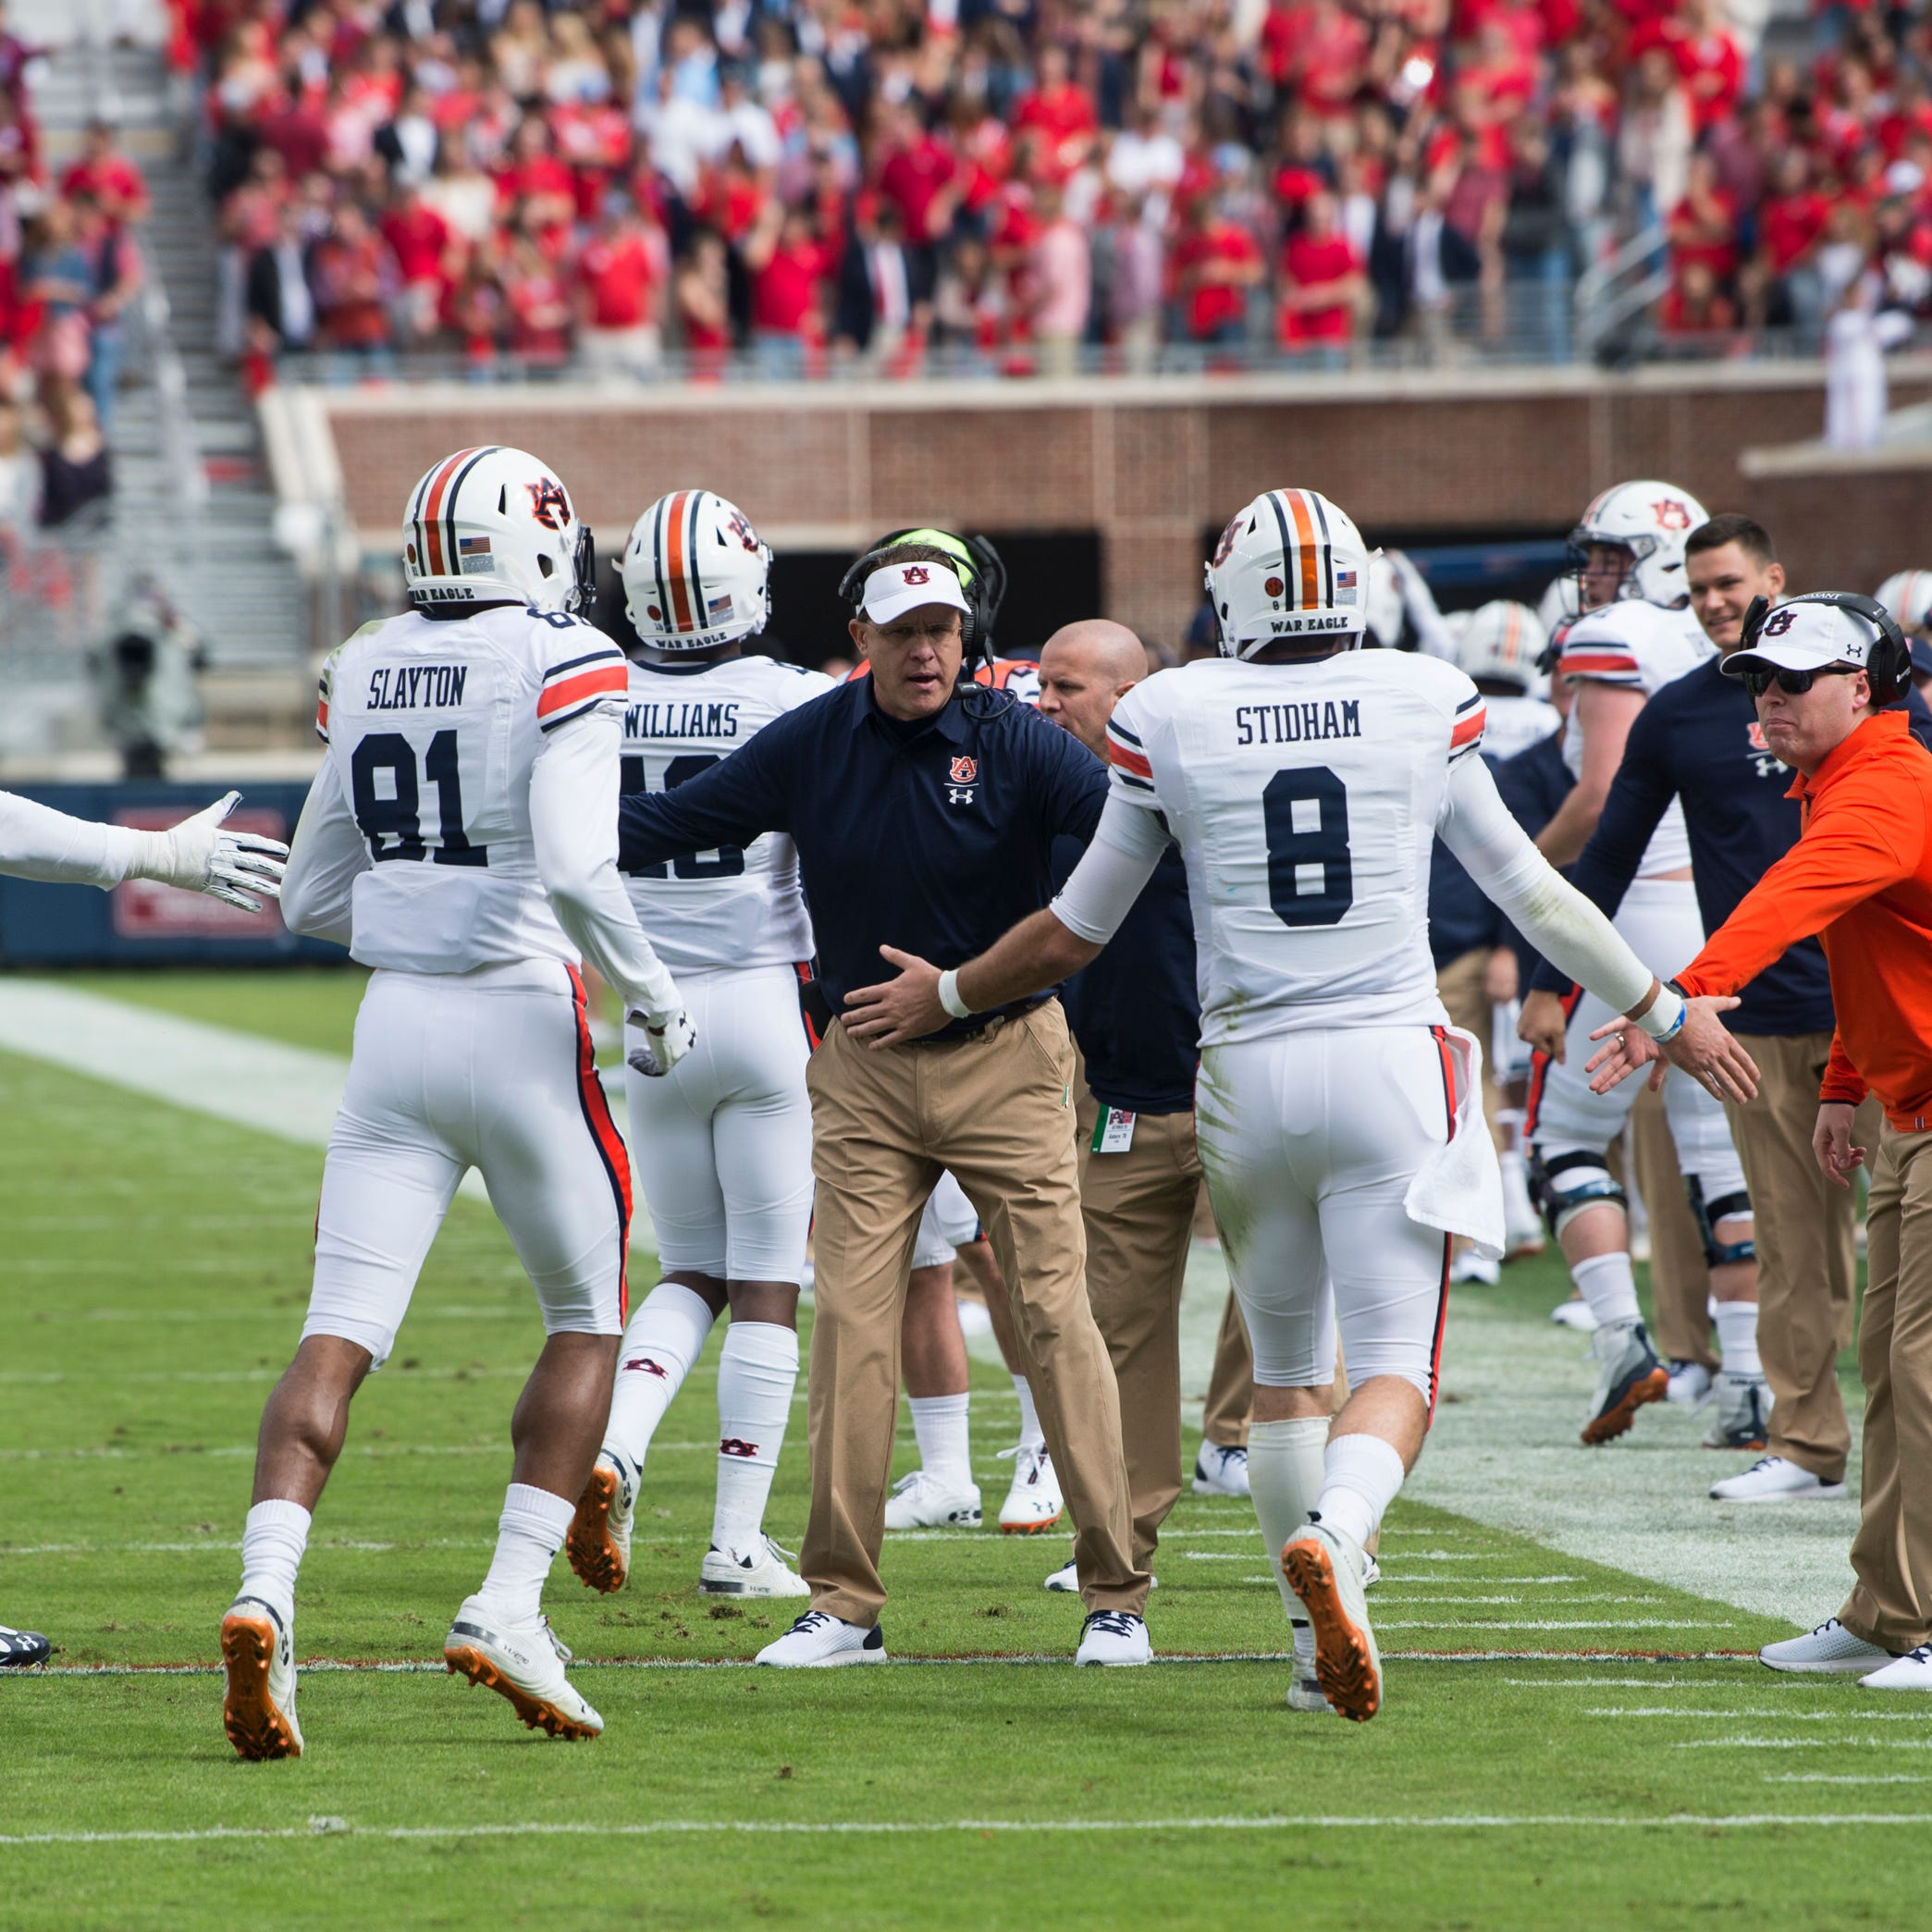 Gus Malzahn fights for players as Auburn overcomes 'storm' of negativity to win at Ole Miss